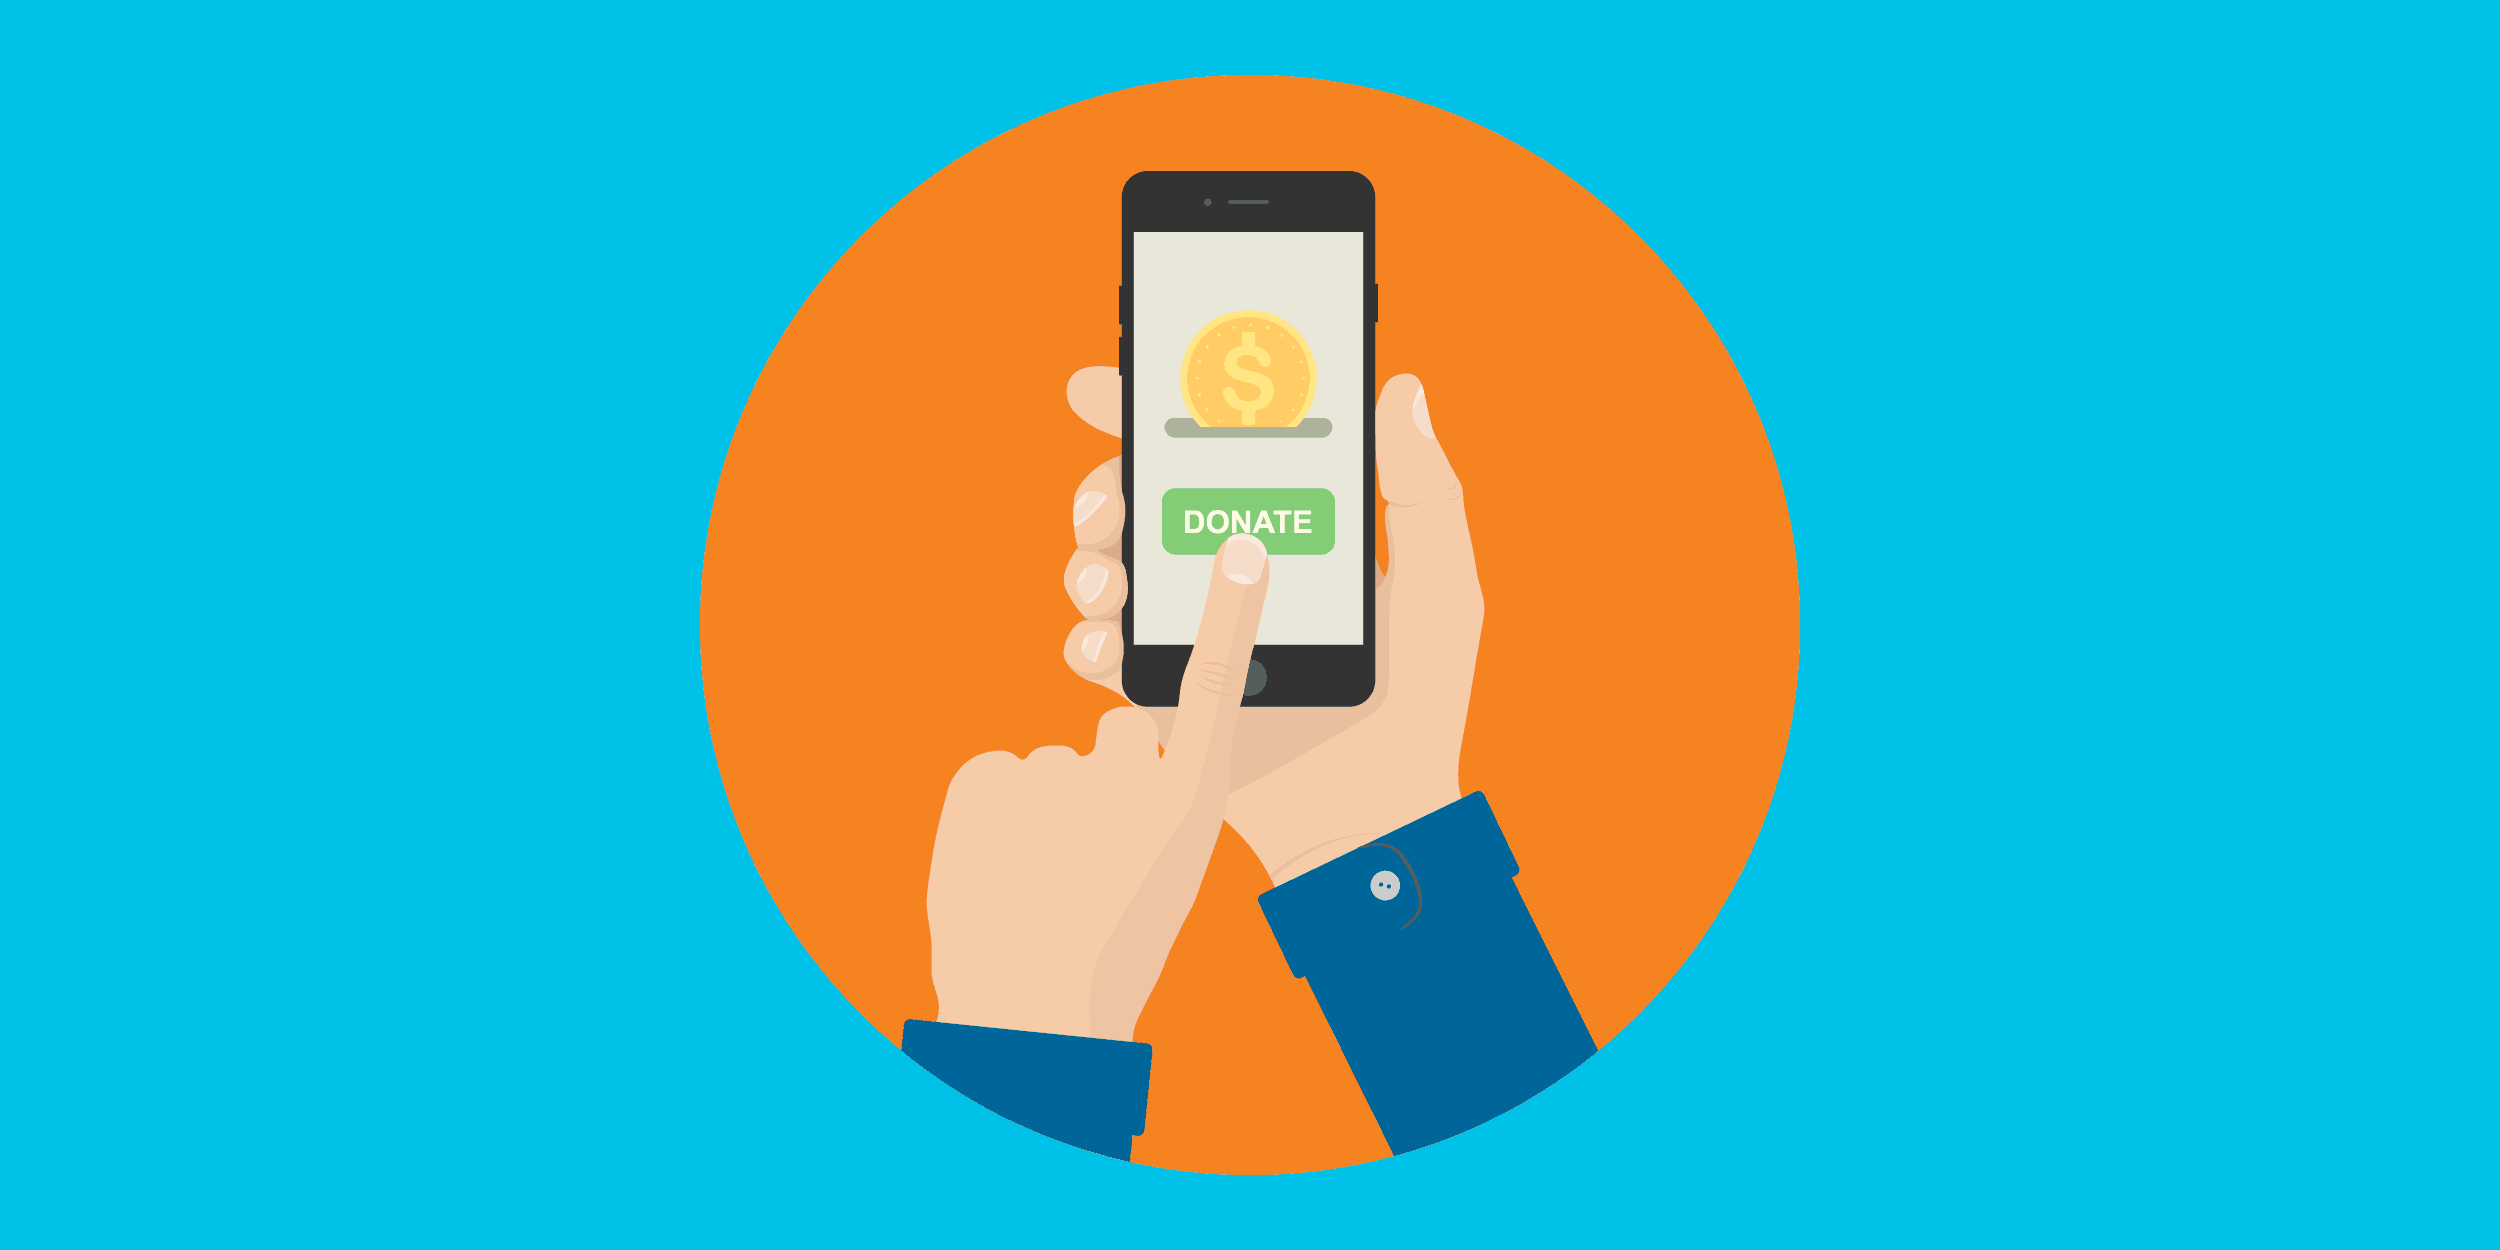 illustration of a person making a donation to a nonprofit on a mobile phone